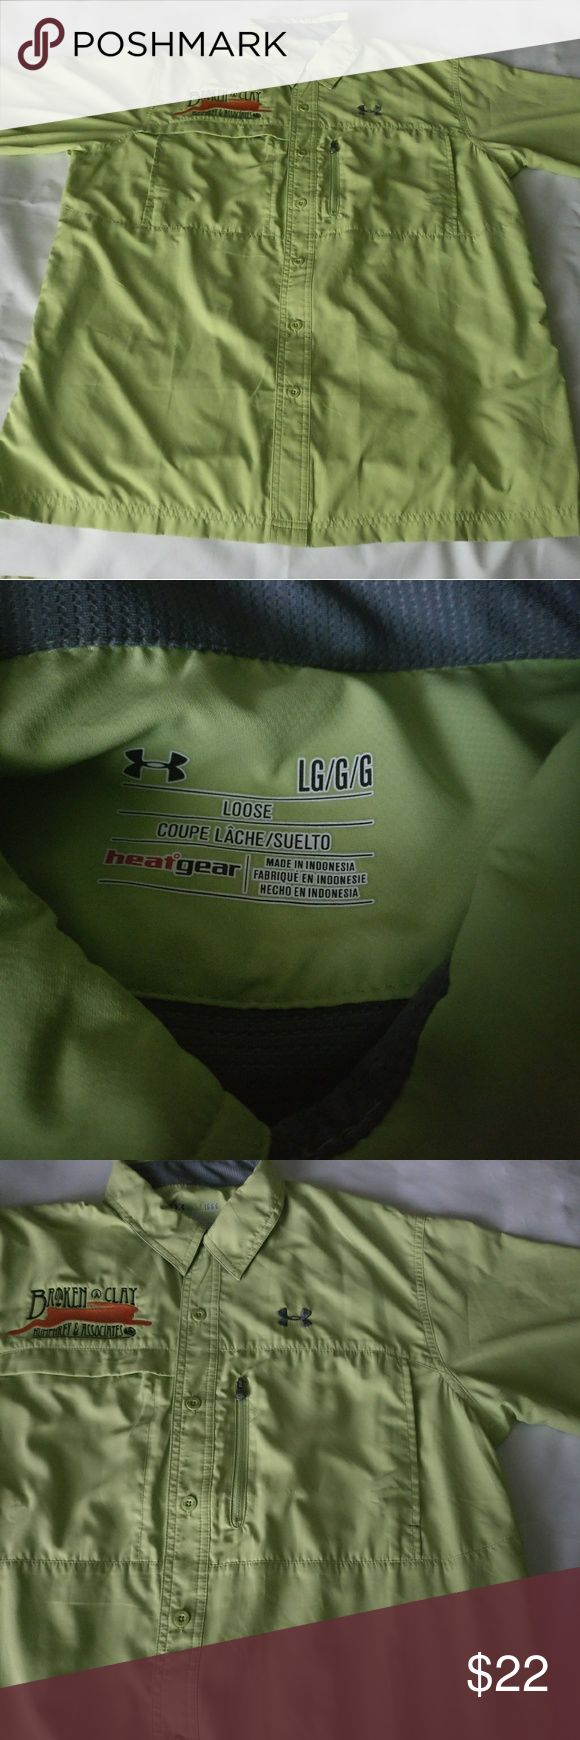 Under Armour Loose Fit Heat Gear Vented Fishing Gently used before hand. Very little if any wear.  TAG SIZE: L  Length:  23.5 inches armpit to armpit & 30 inches shoulder to base  ITEM SPECIFICS Color - Green Fabric - 100% Polyester Under Armour Shirts Casual Button Down Shirts